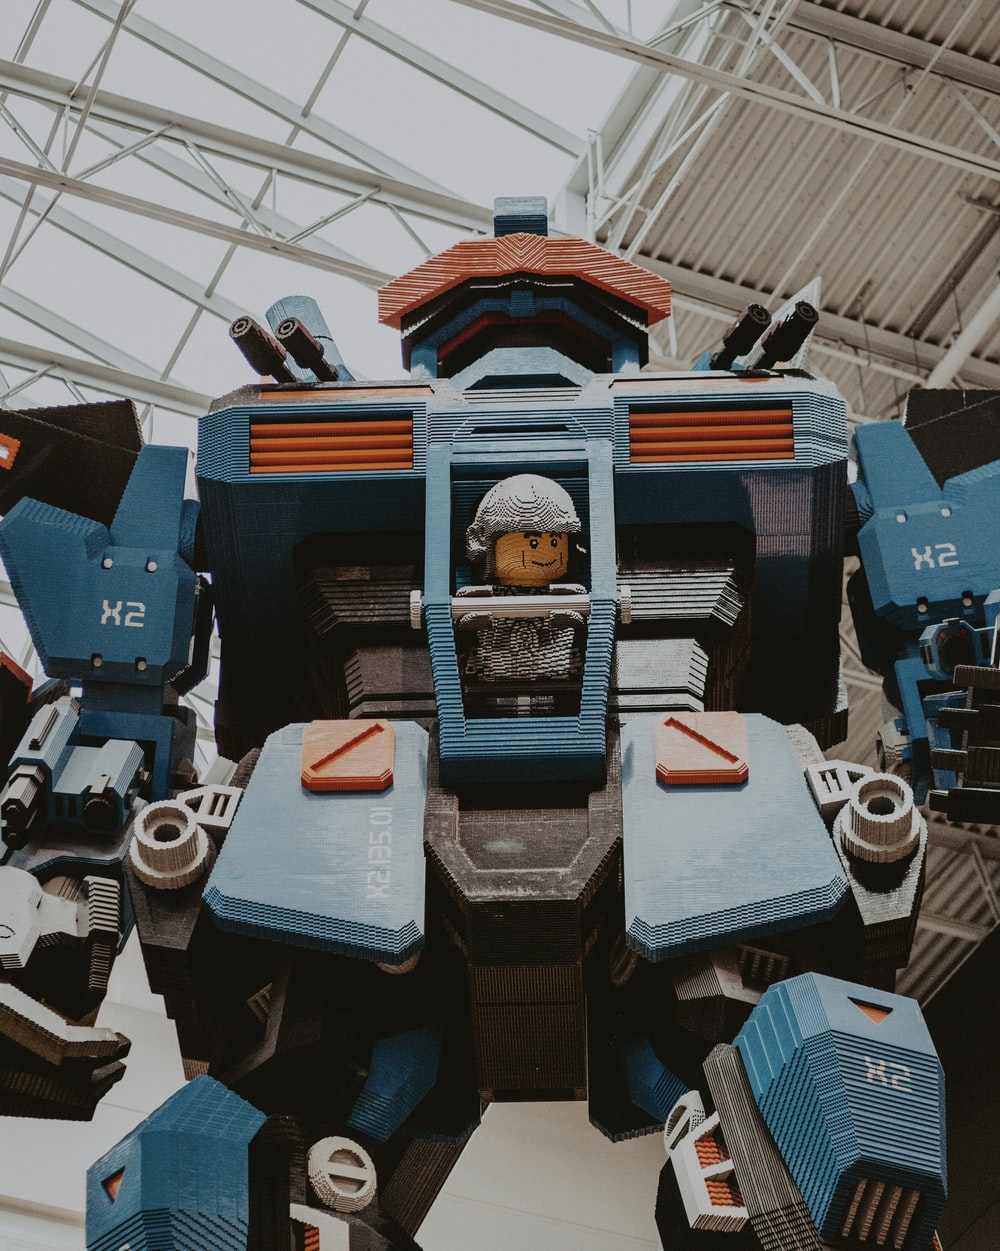 architectural photography of blue and black robot statue